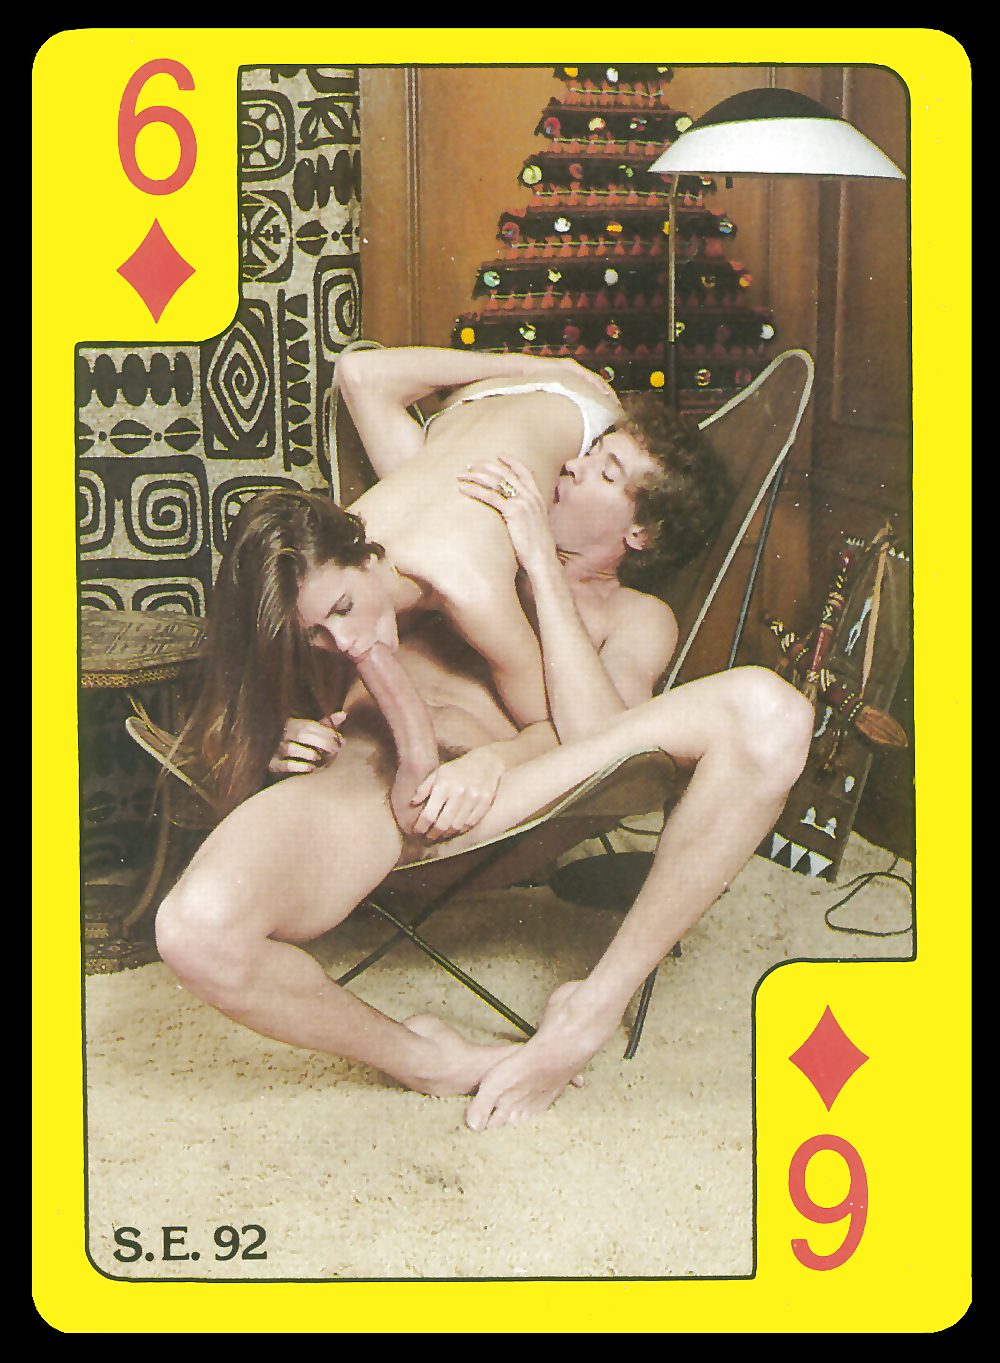 See and save as retro porno playing cards porn pict